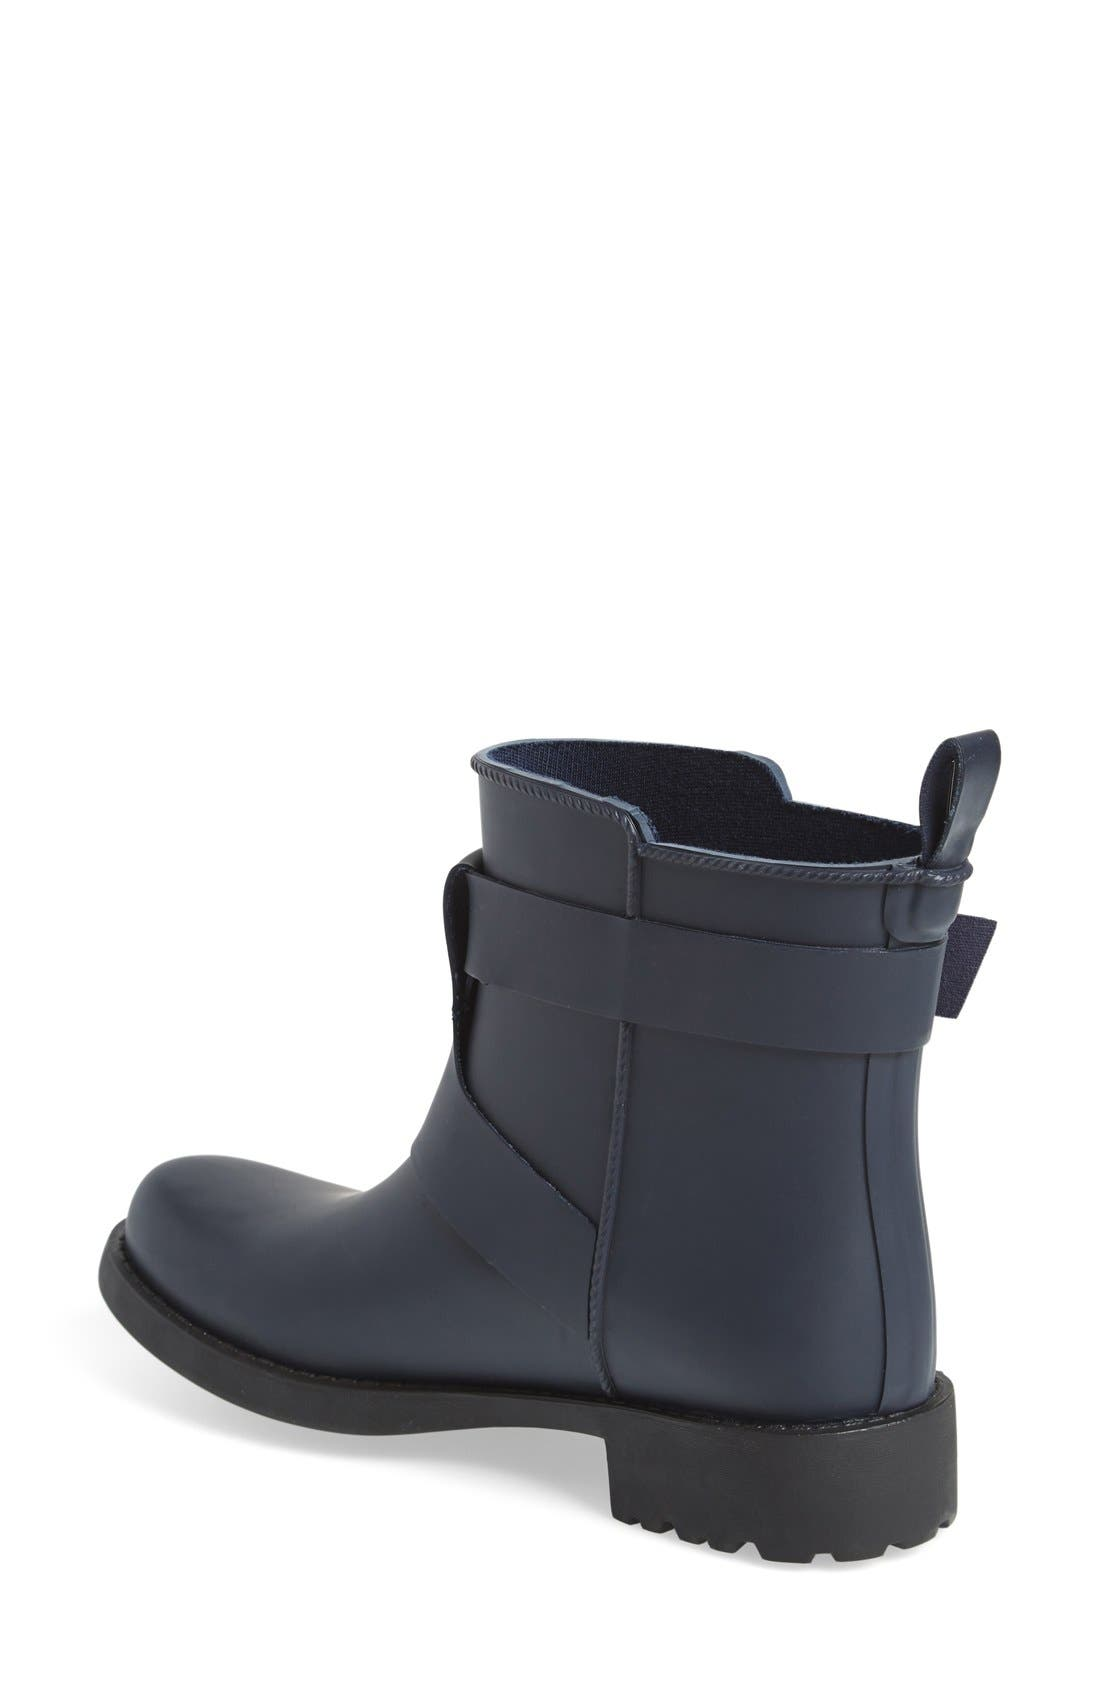 Alternate Image 2  - Gentle Souls 'Best Fun' Moto Rain Boot (Women)